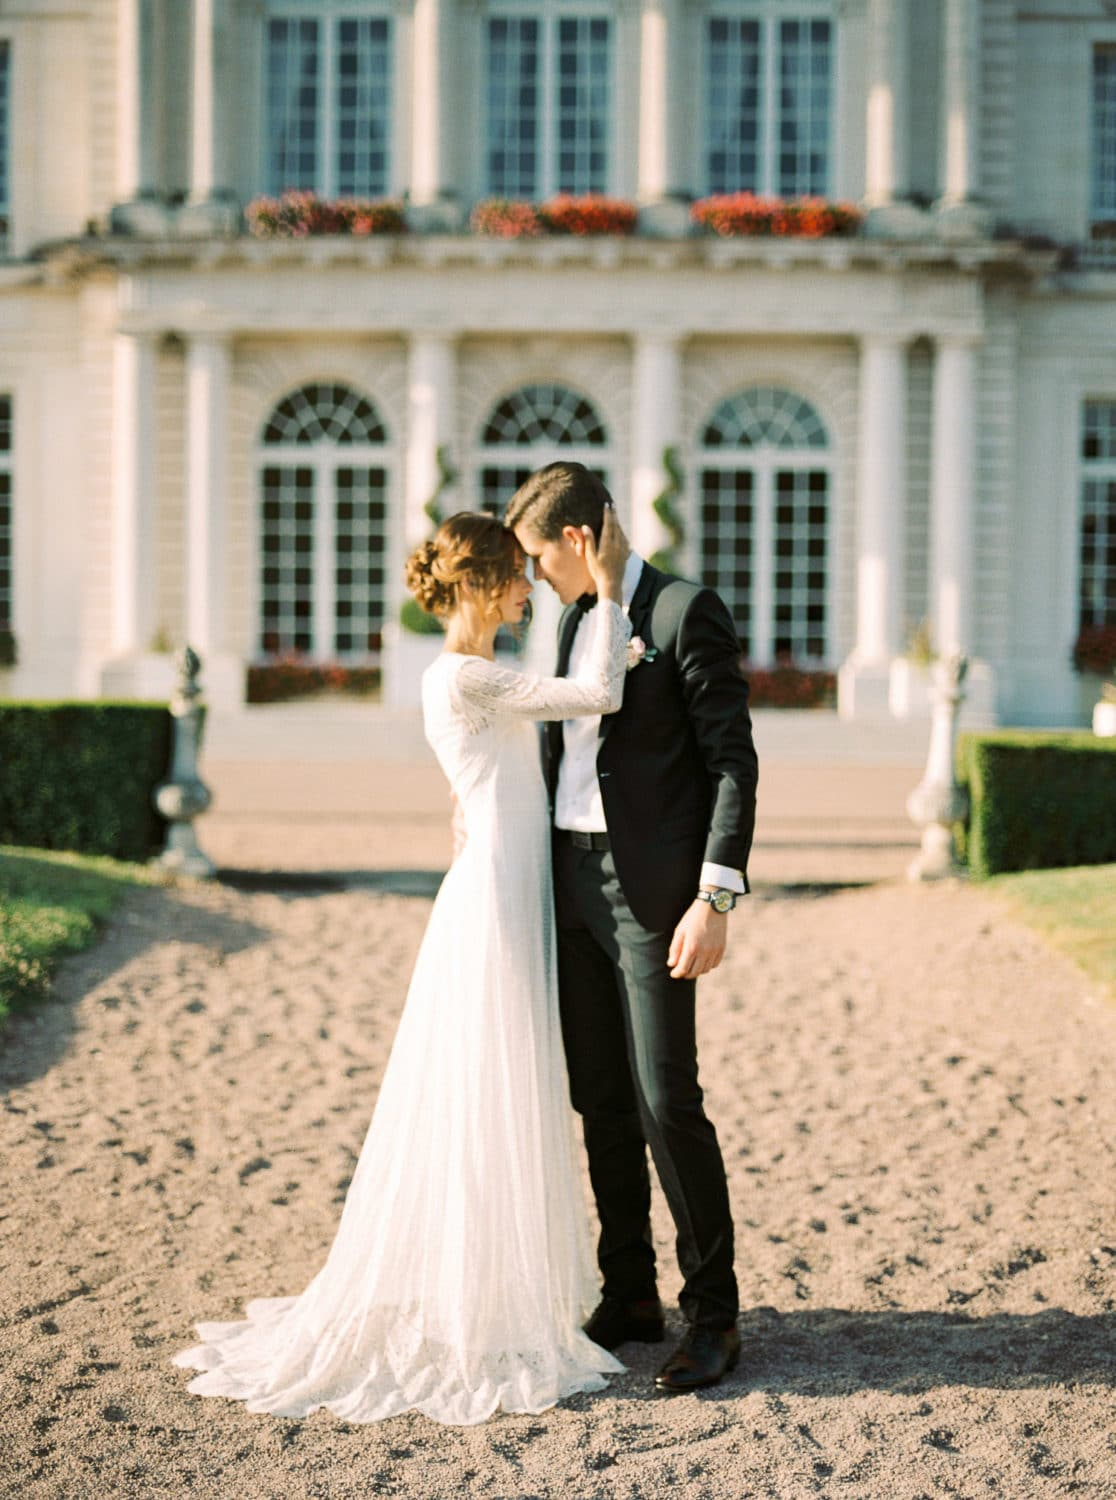 Luxury wedding, Loire Valley, chateau d'artigny, wedding designer